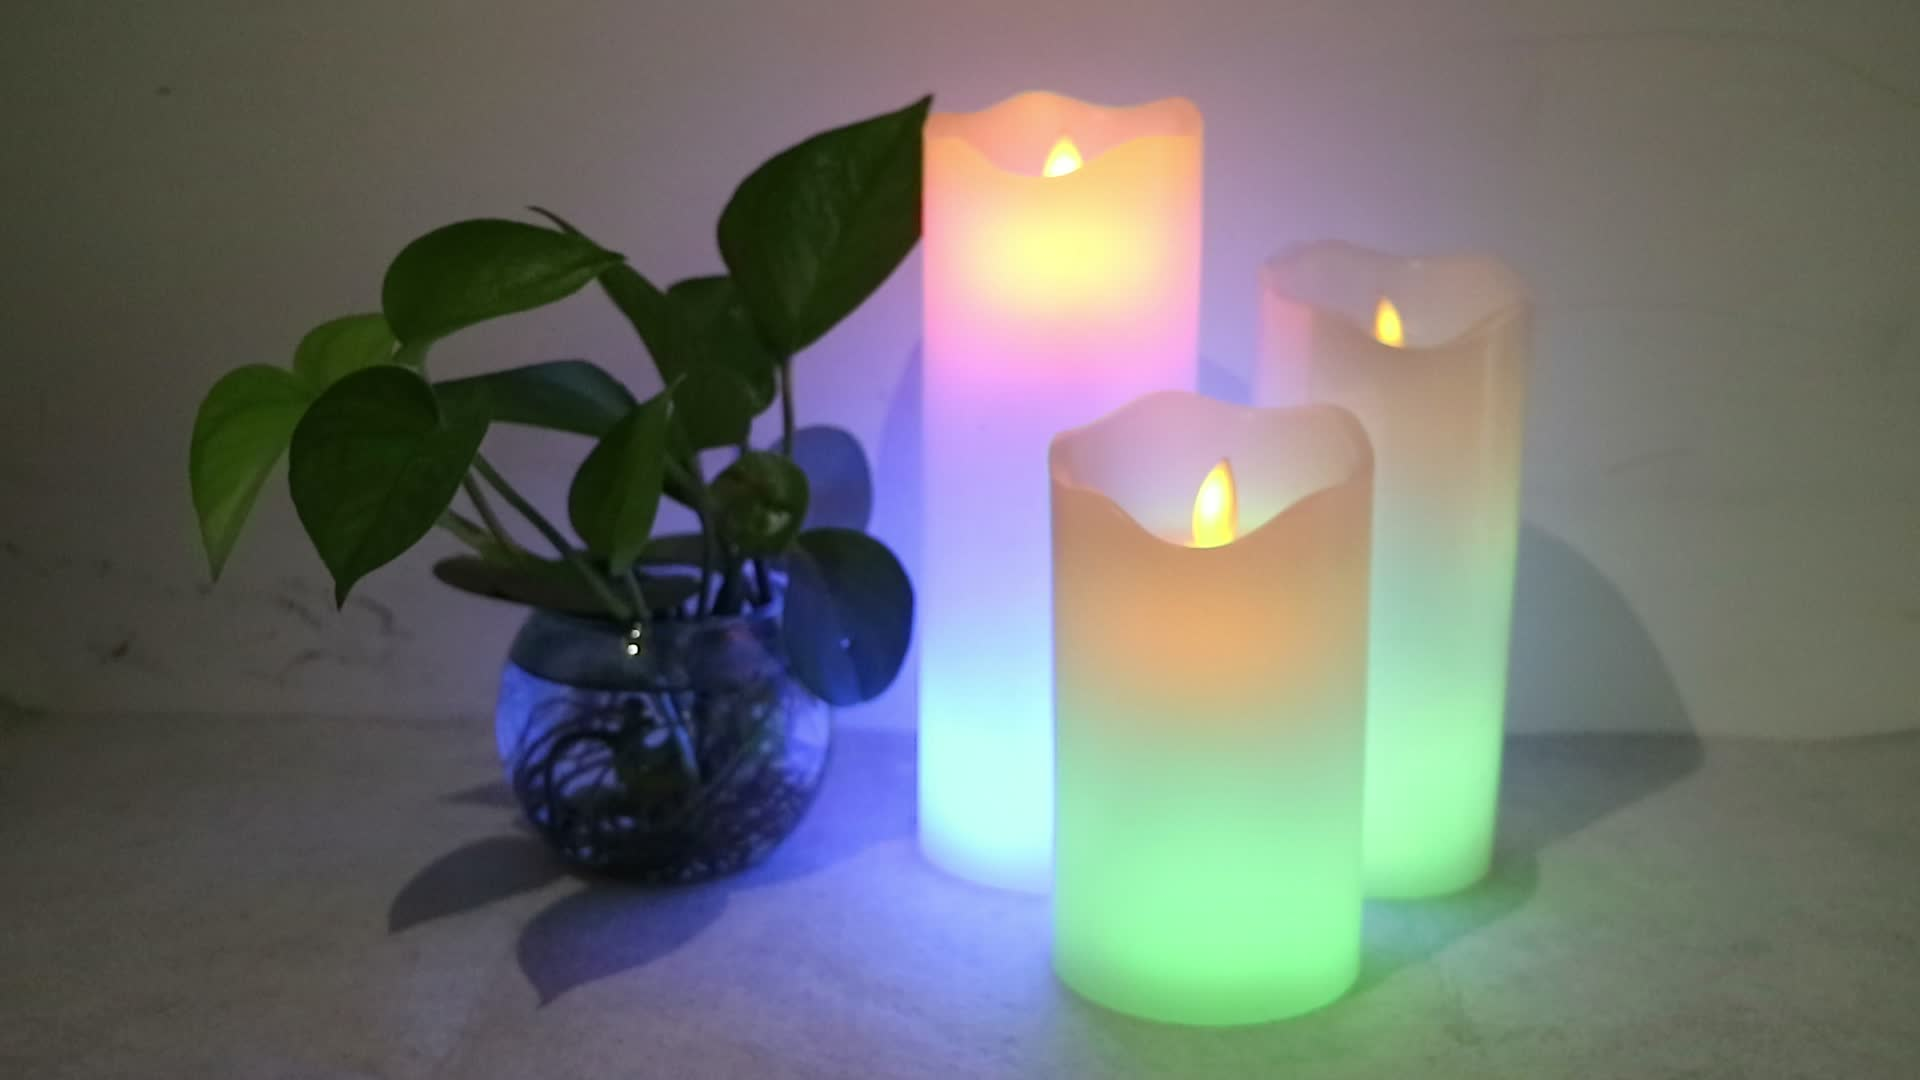 The most popular hotsale high quality flameless moving candle wedding souvenir led candle light